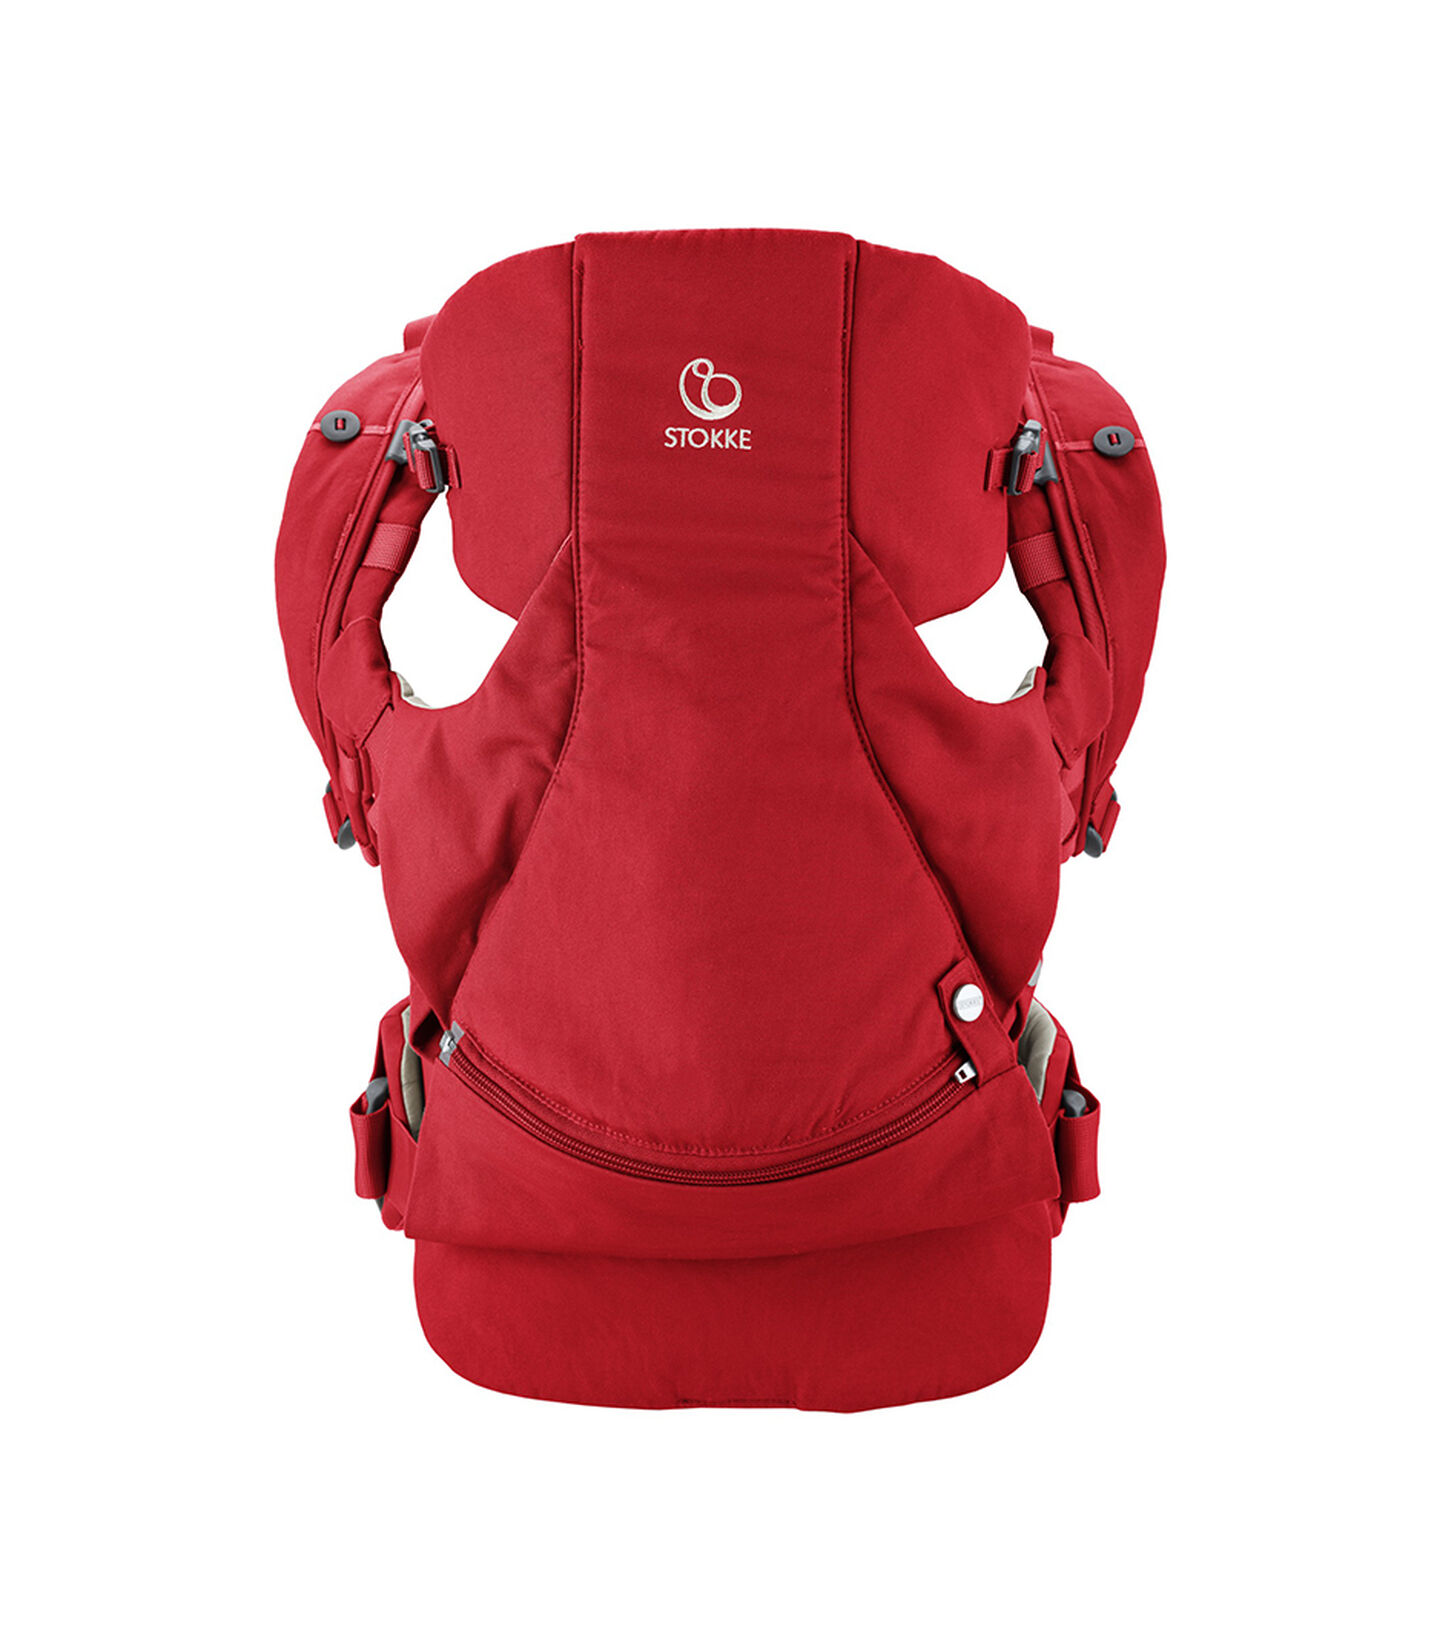 Stokke® MyCarrier™ Bauchtrage Red, Red, mainview view 1